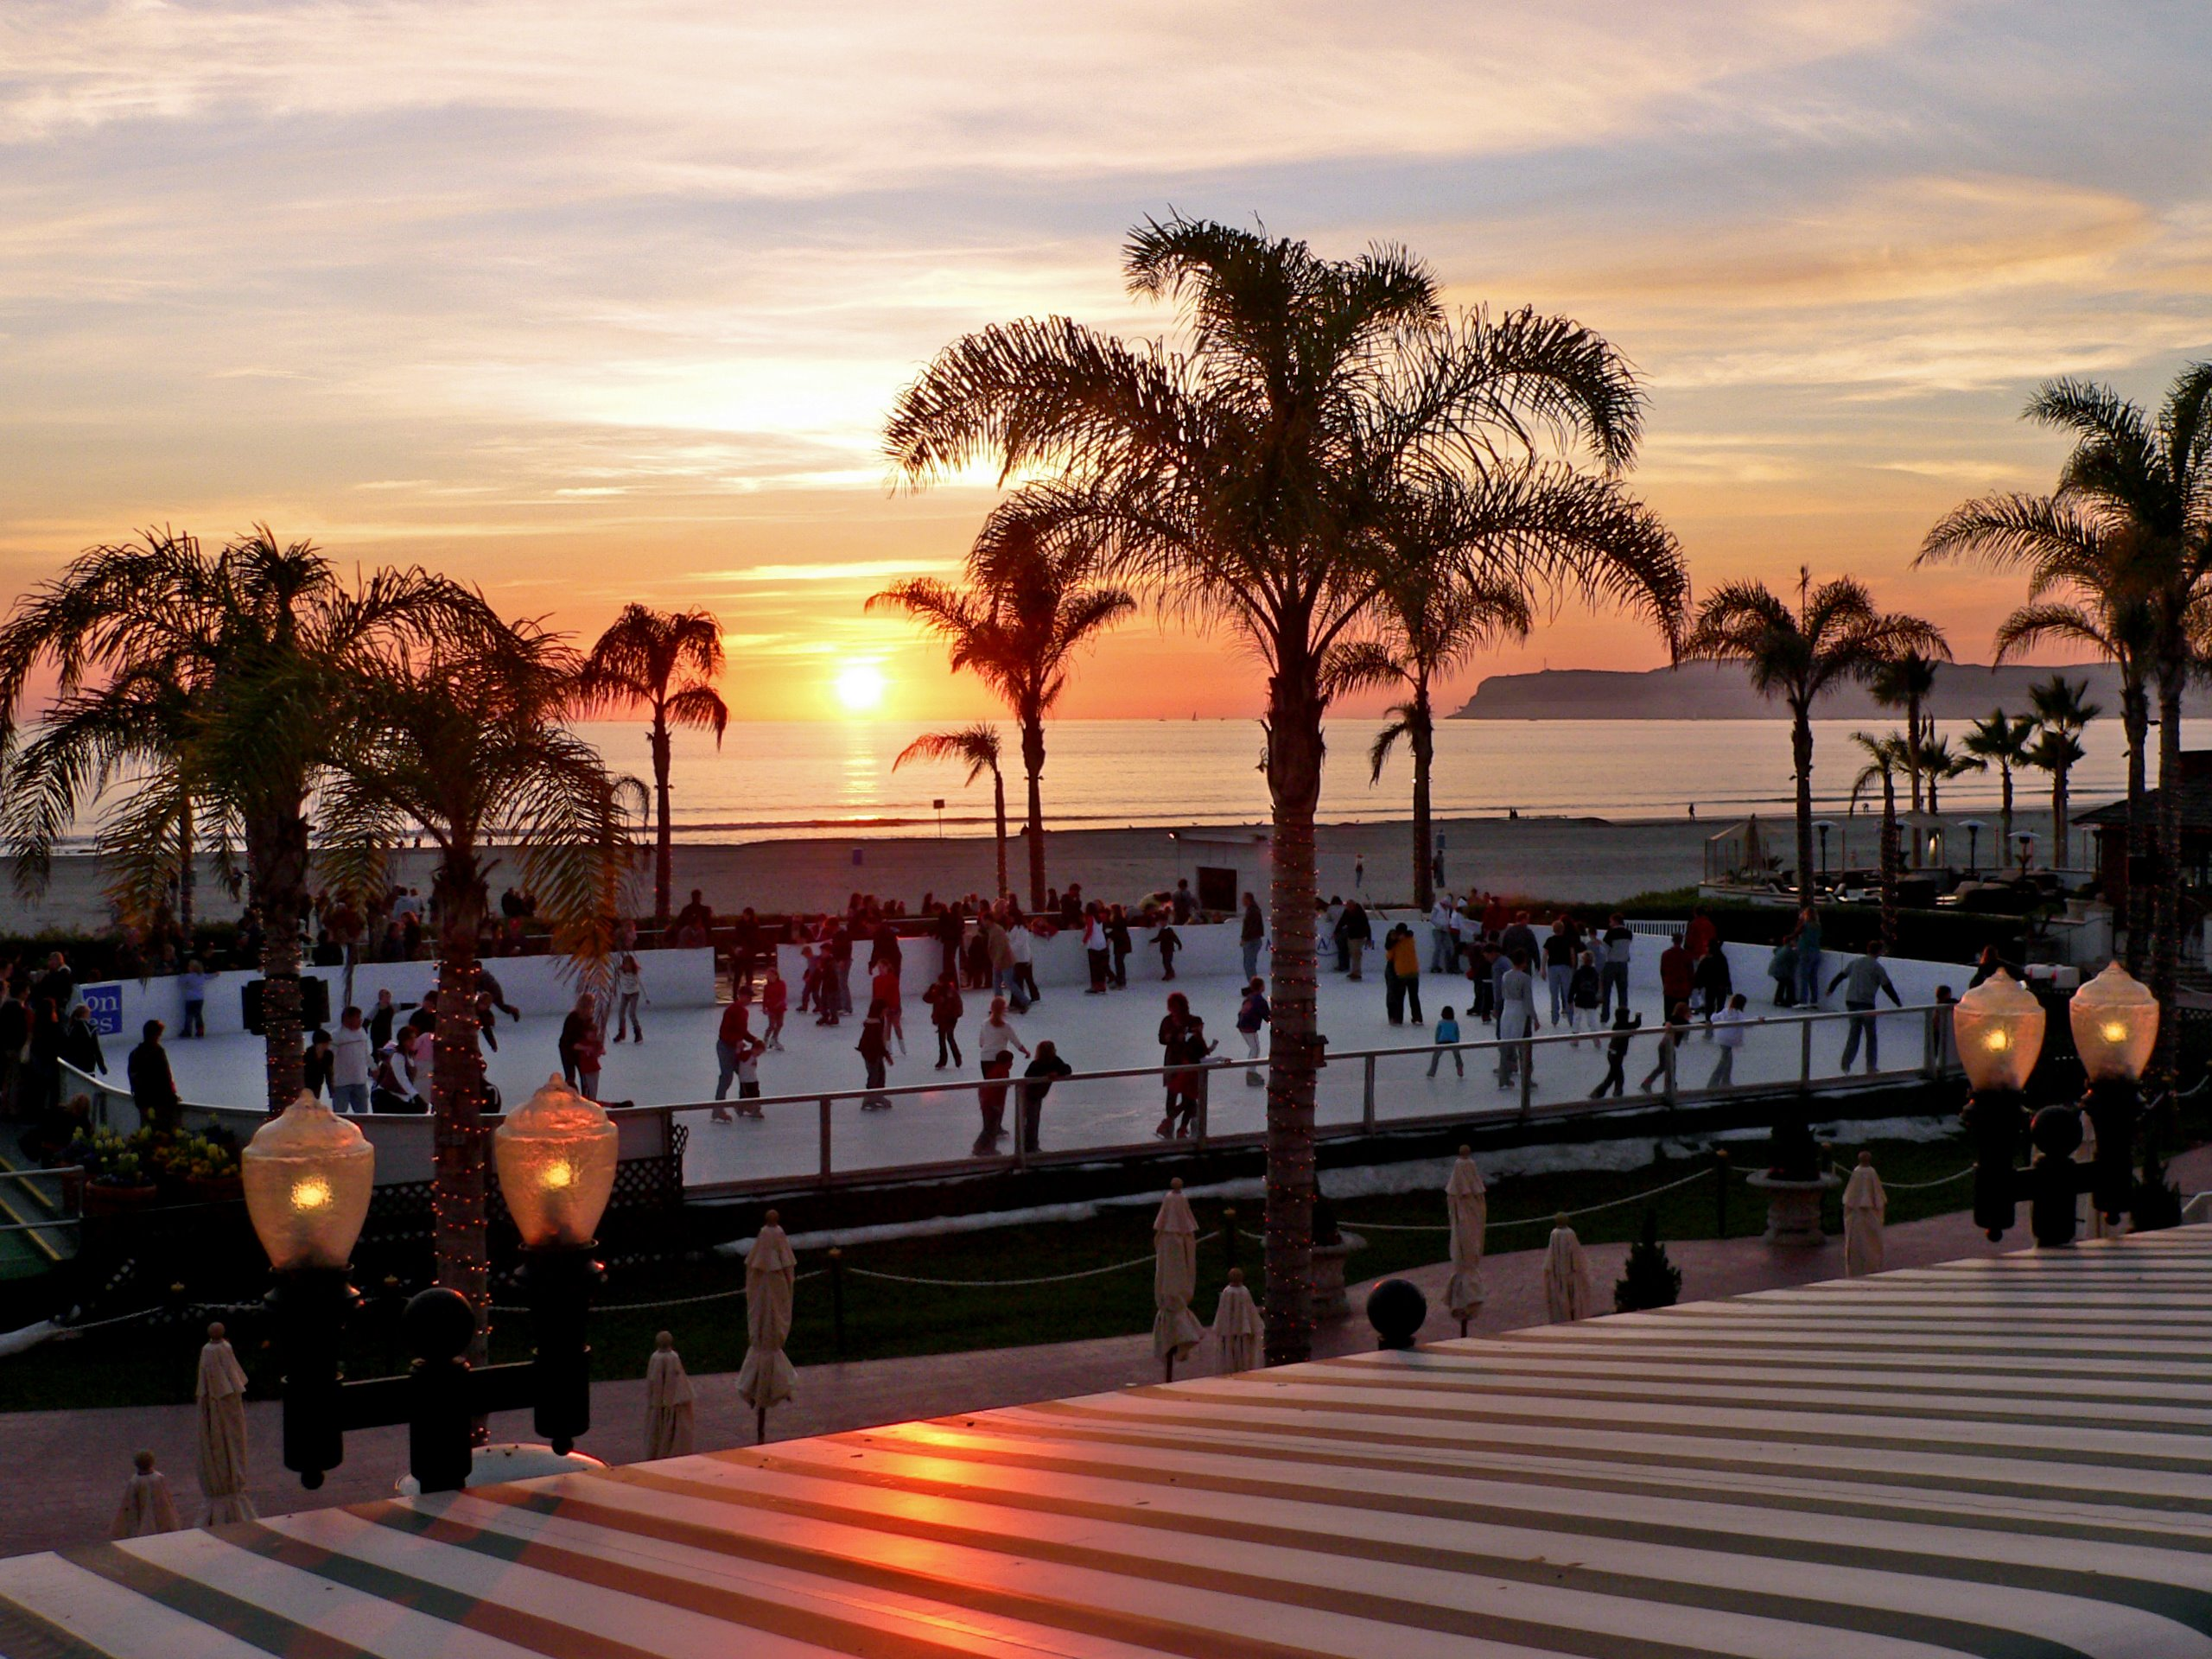 Ice rink by the sea, San Diego